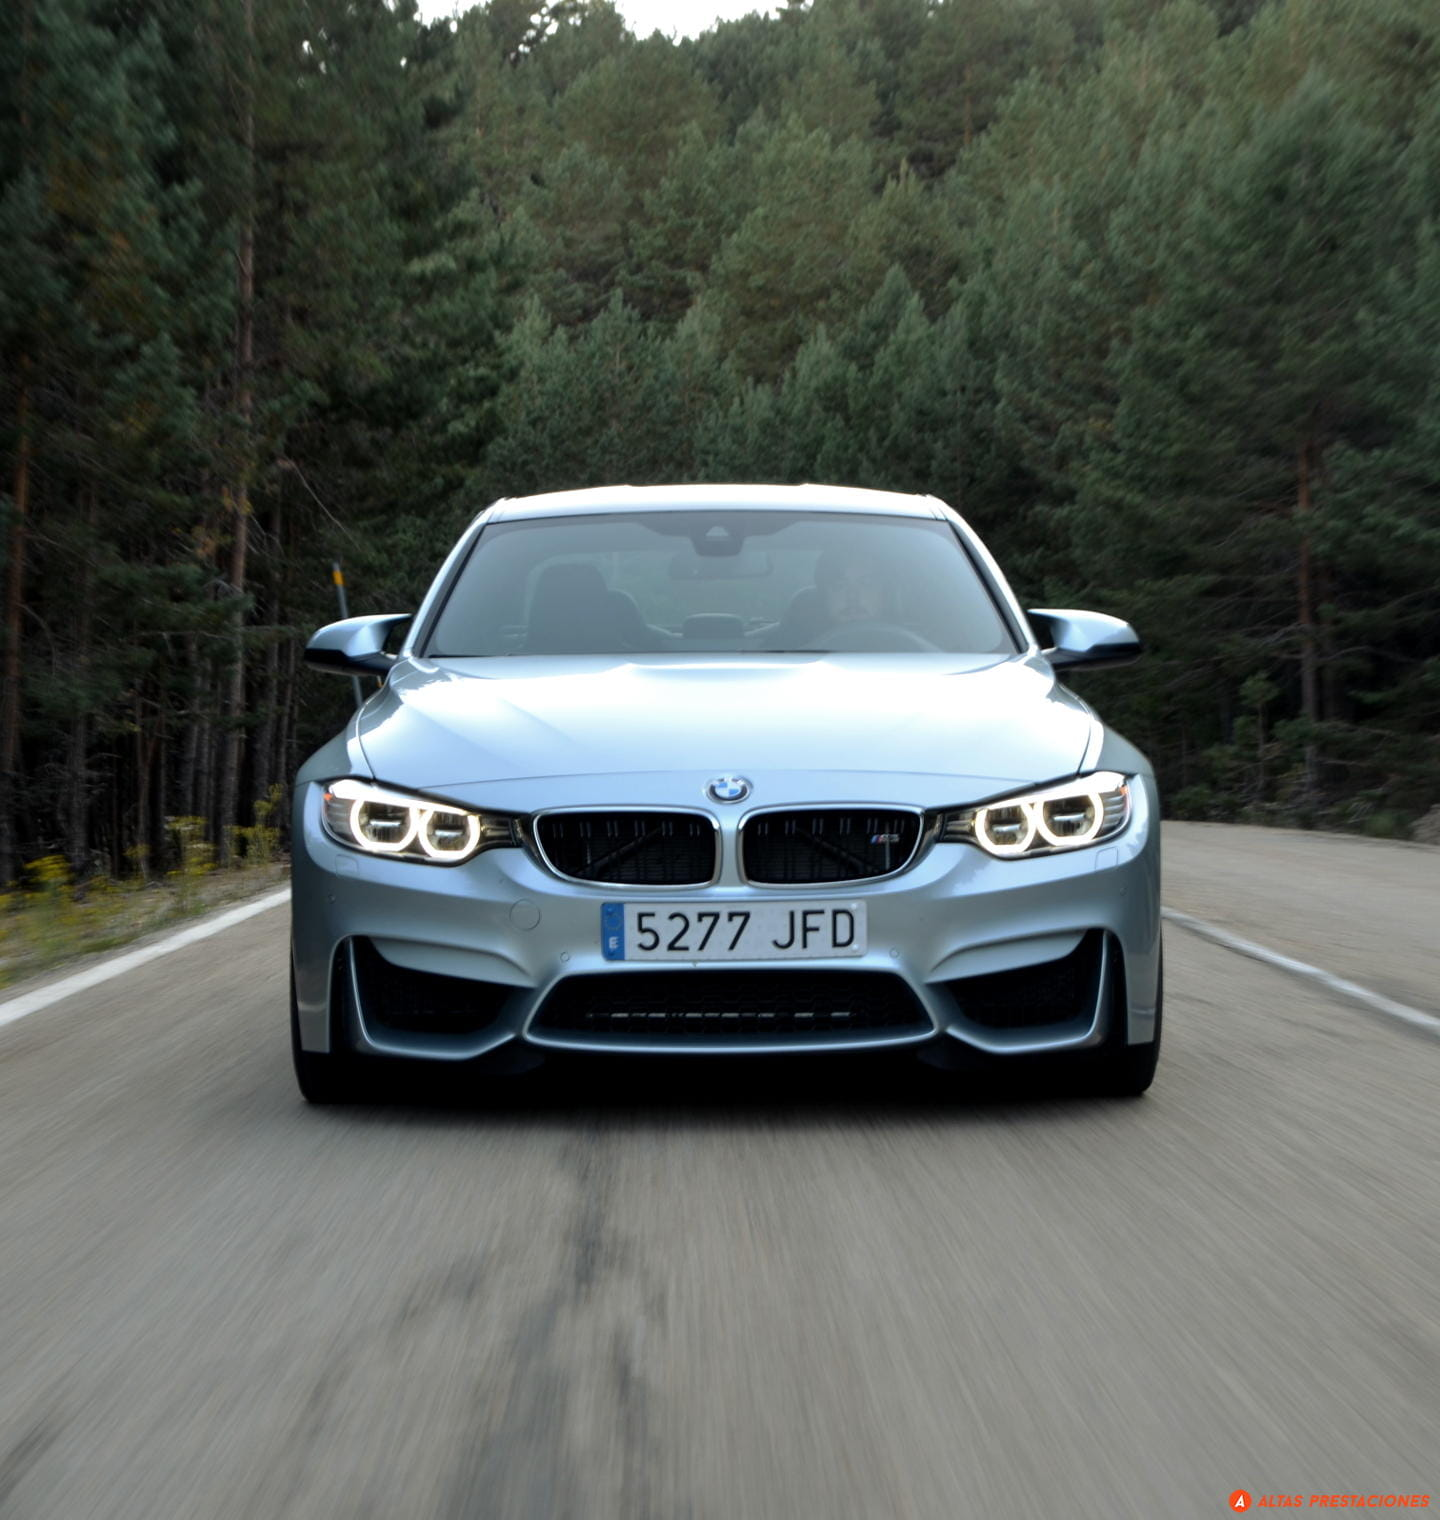 BMW_M3_E92_vs_F80_DM_mapdm_25